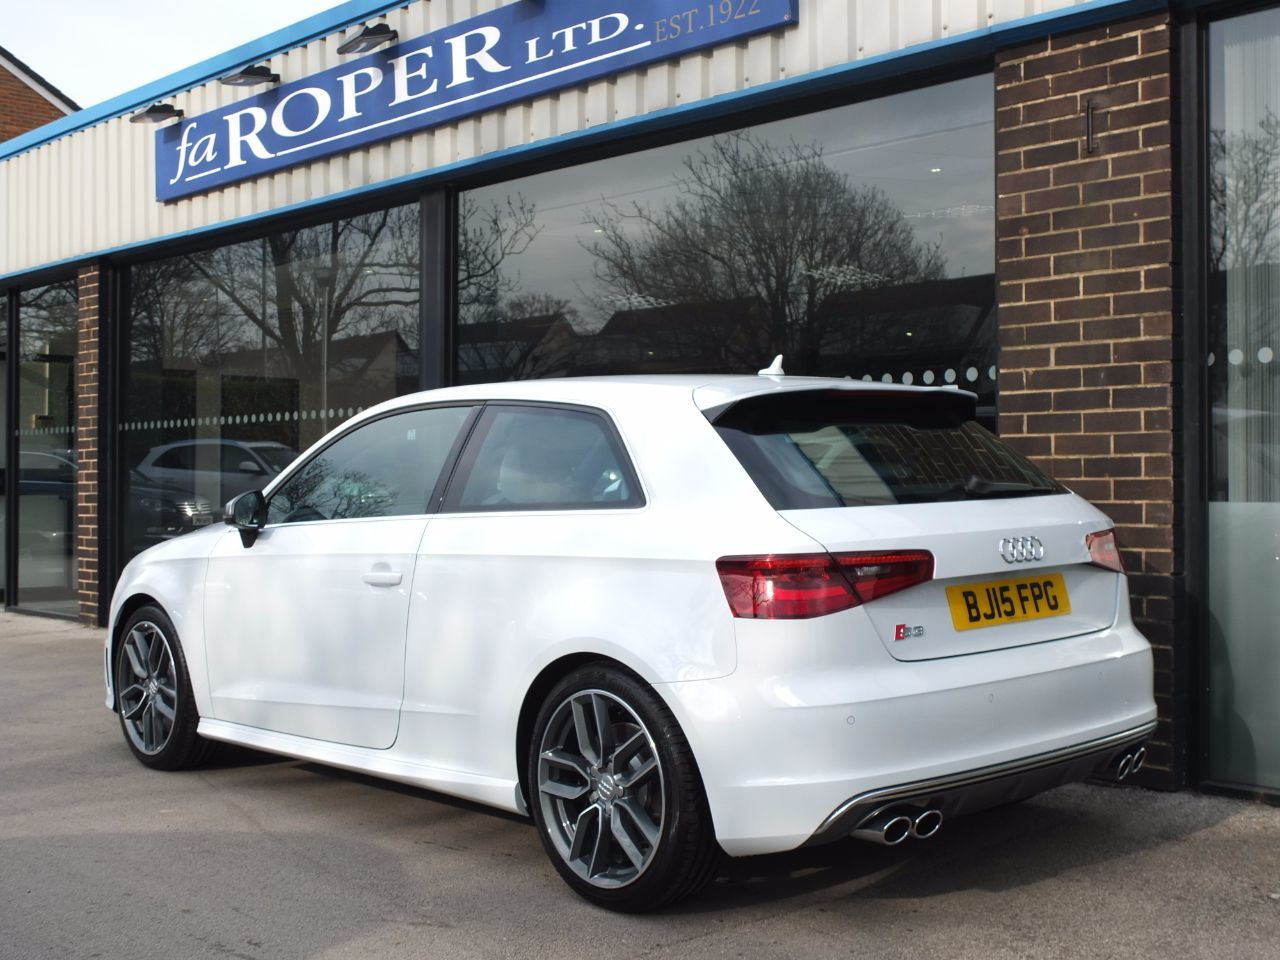 Audi S3 2.0T 300ps quattro 3 door Hatchback Petrol Glacier White Metallic